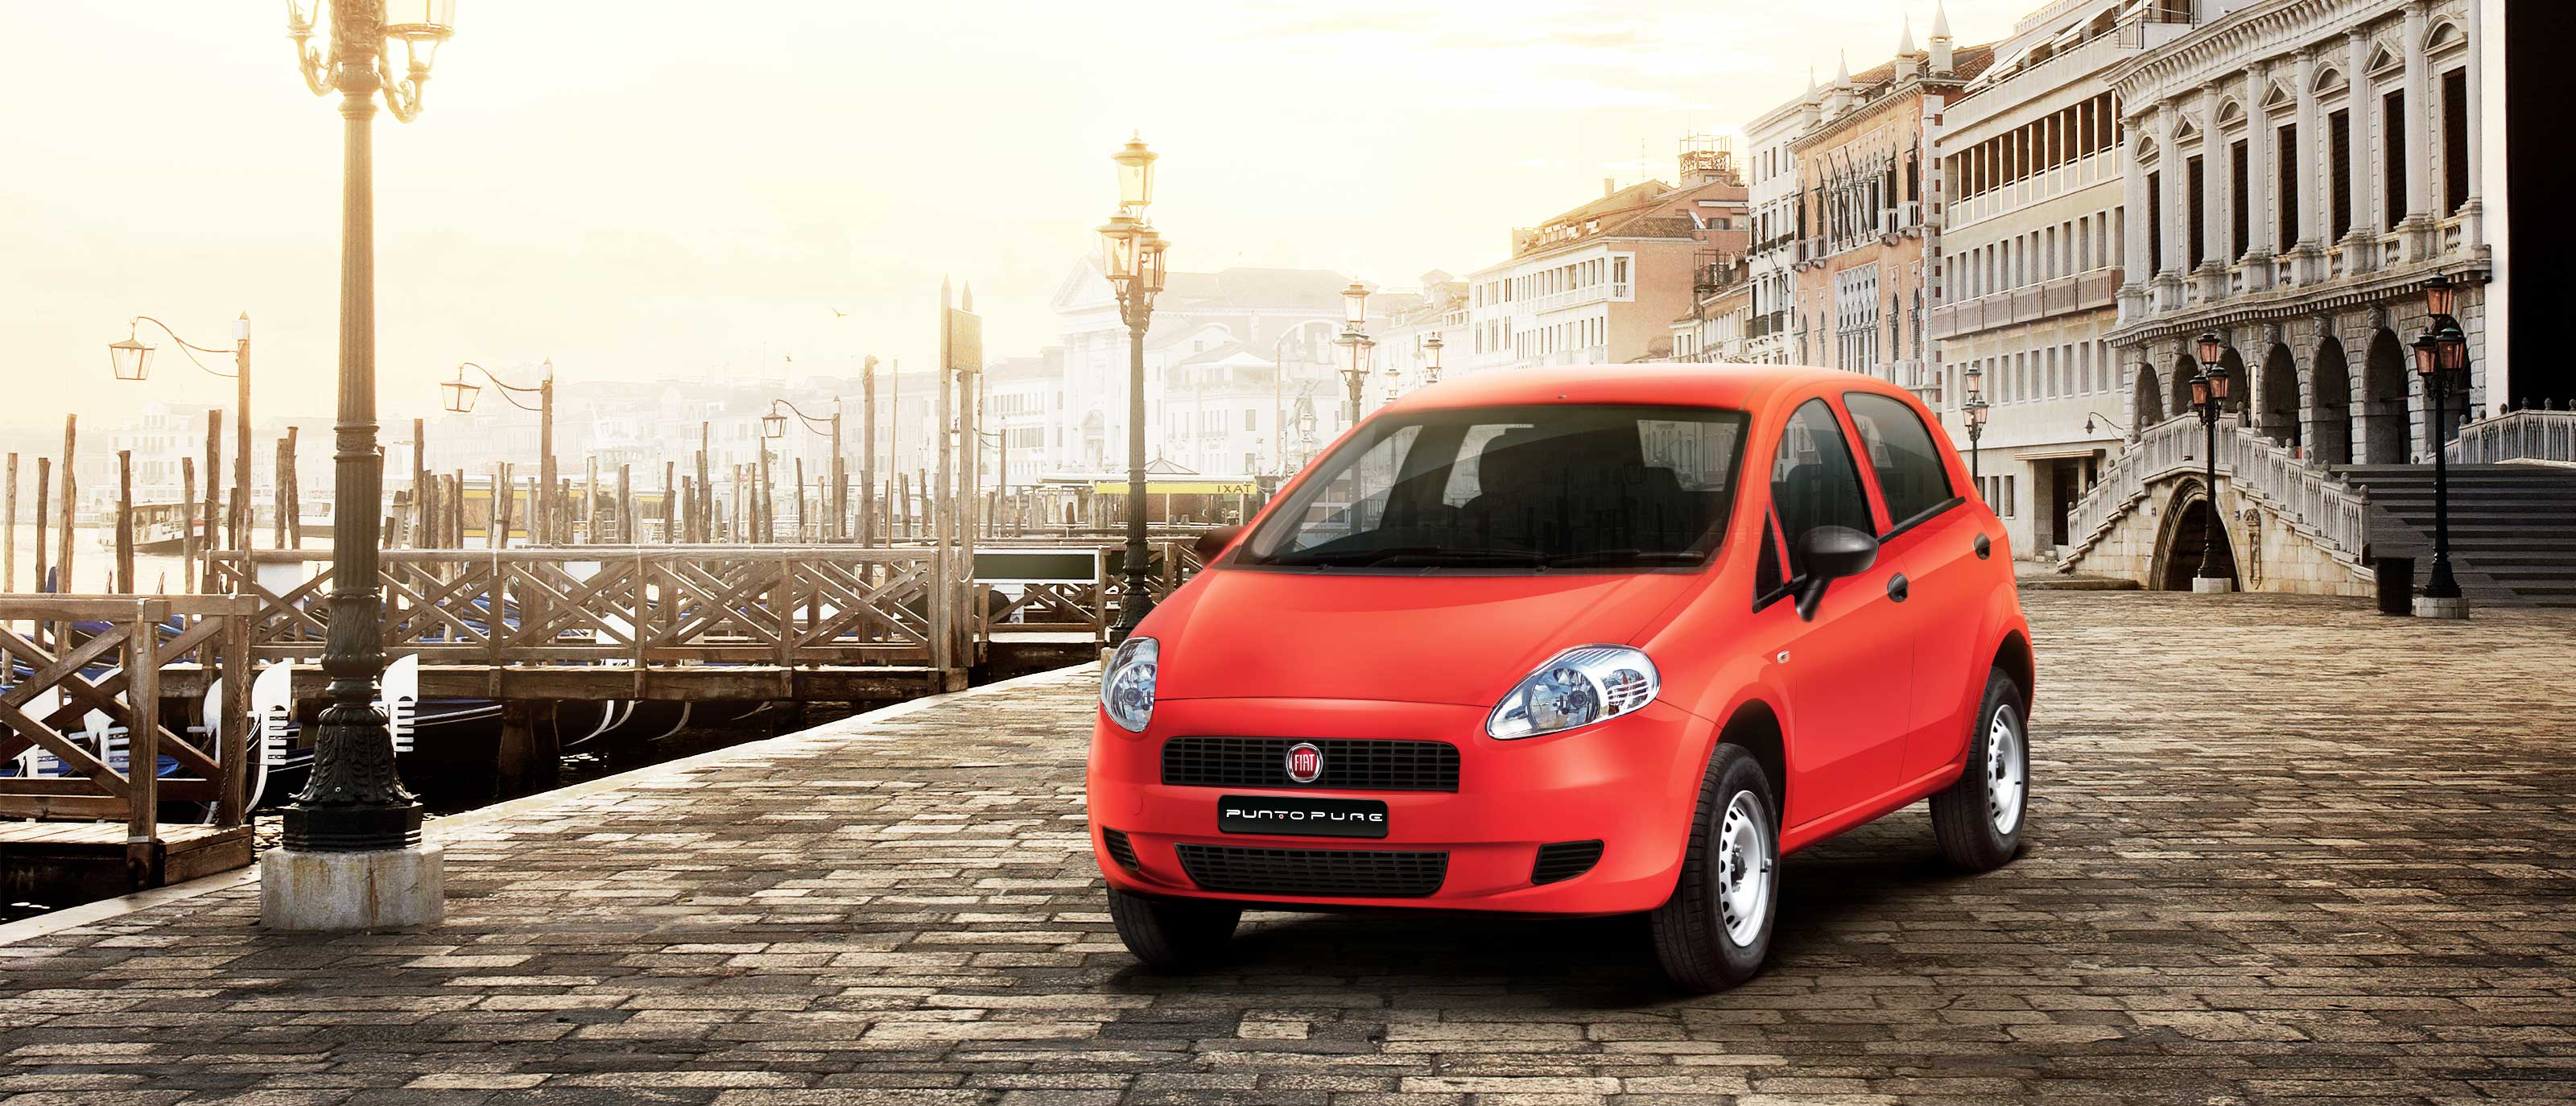 Fiat Punto Pure Specifications, Price, Mileage, Pics, Review